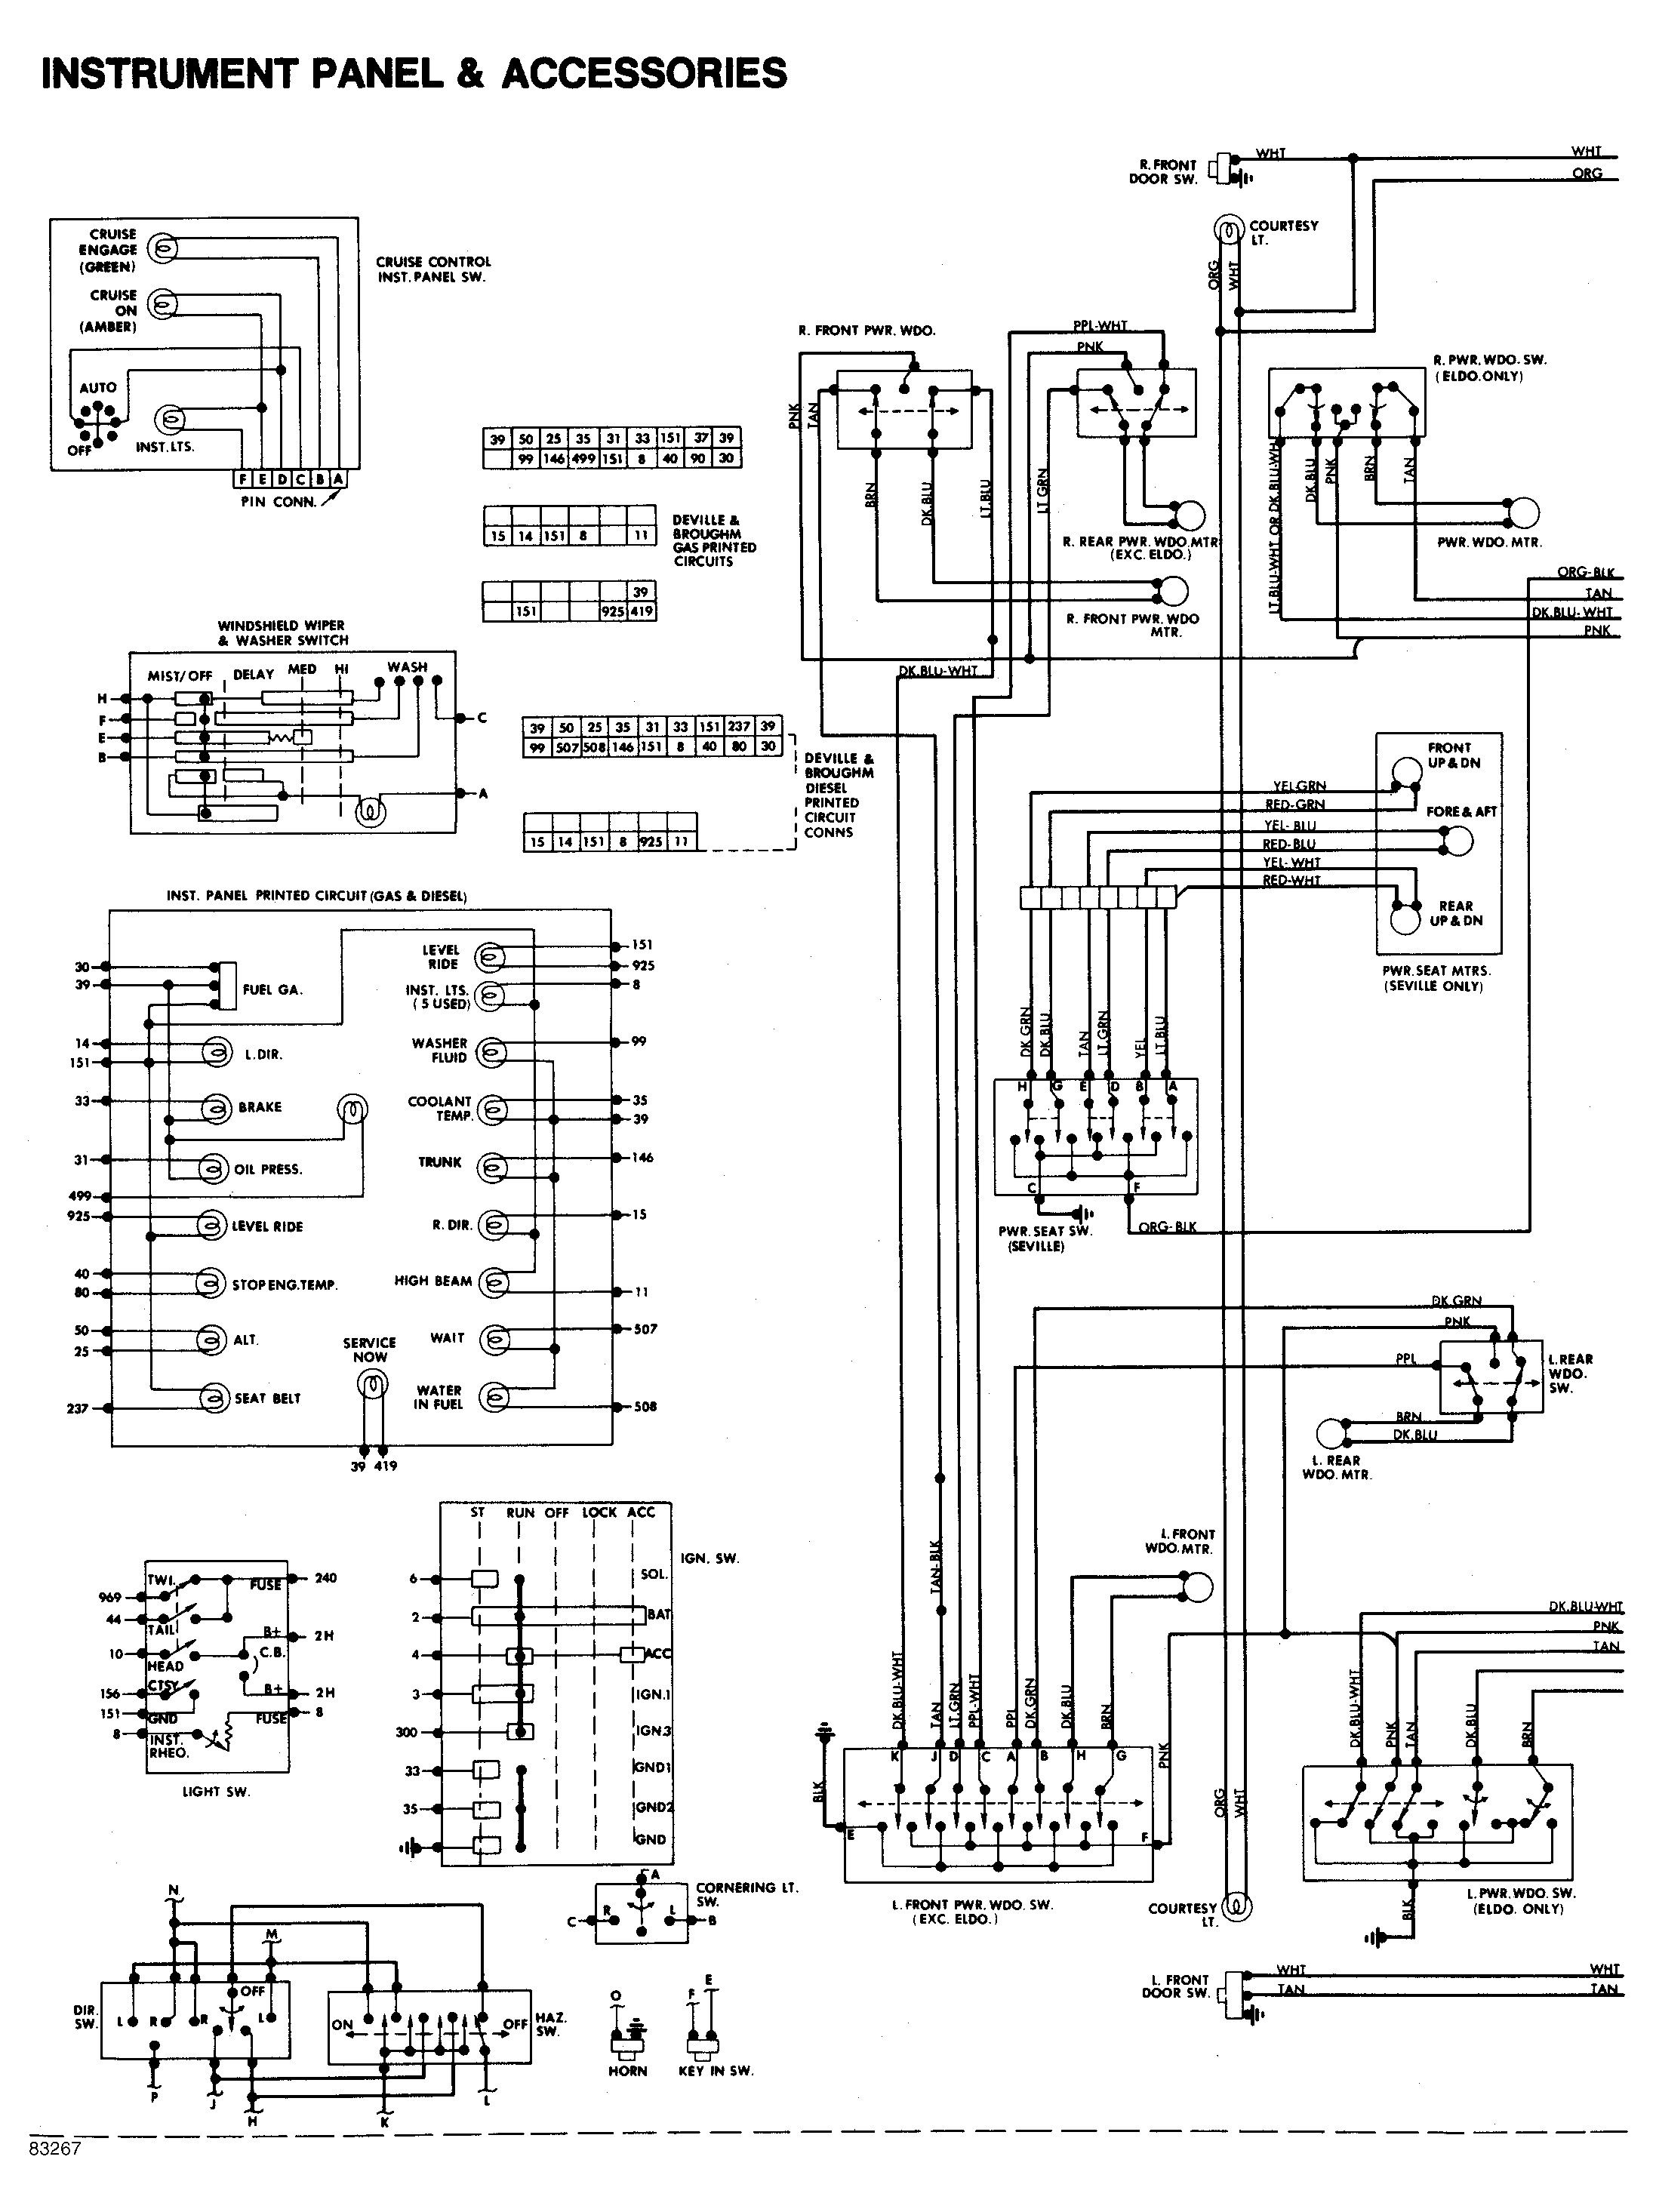 2005 honda civic audio wiring diagram